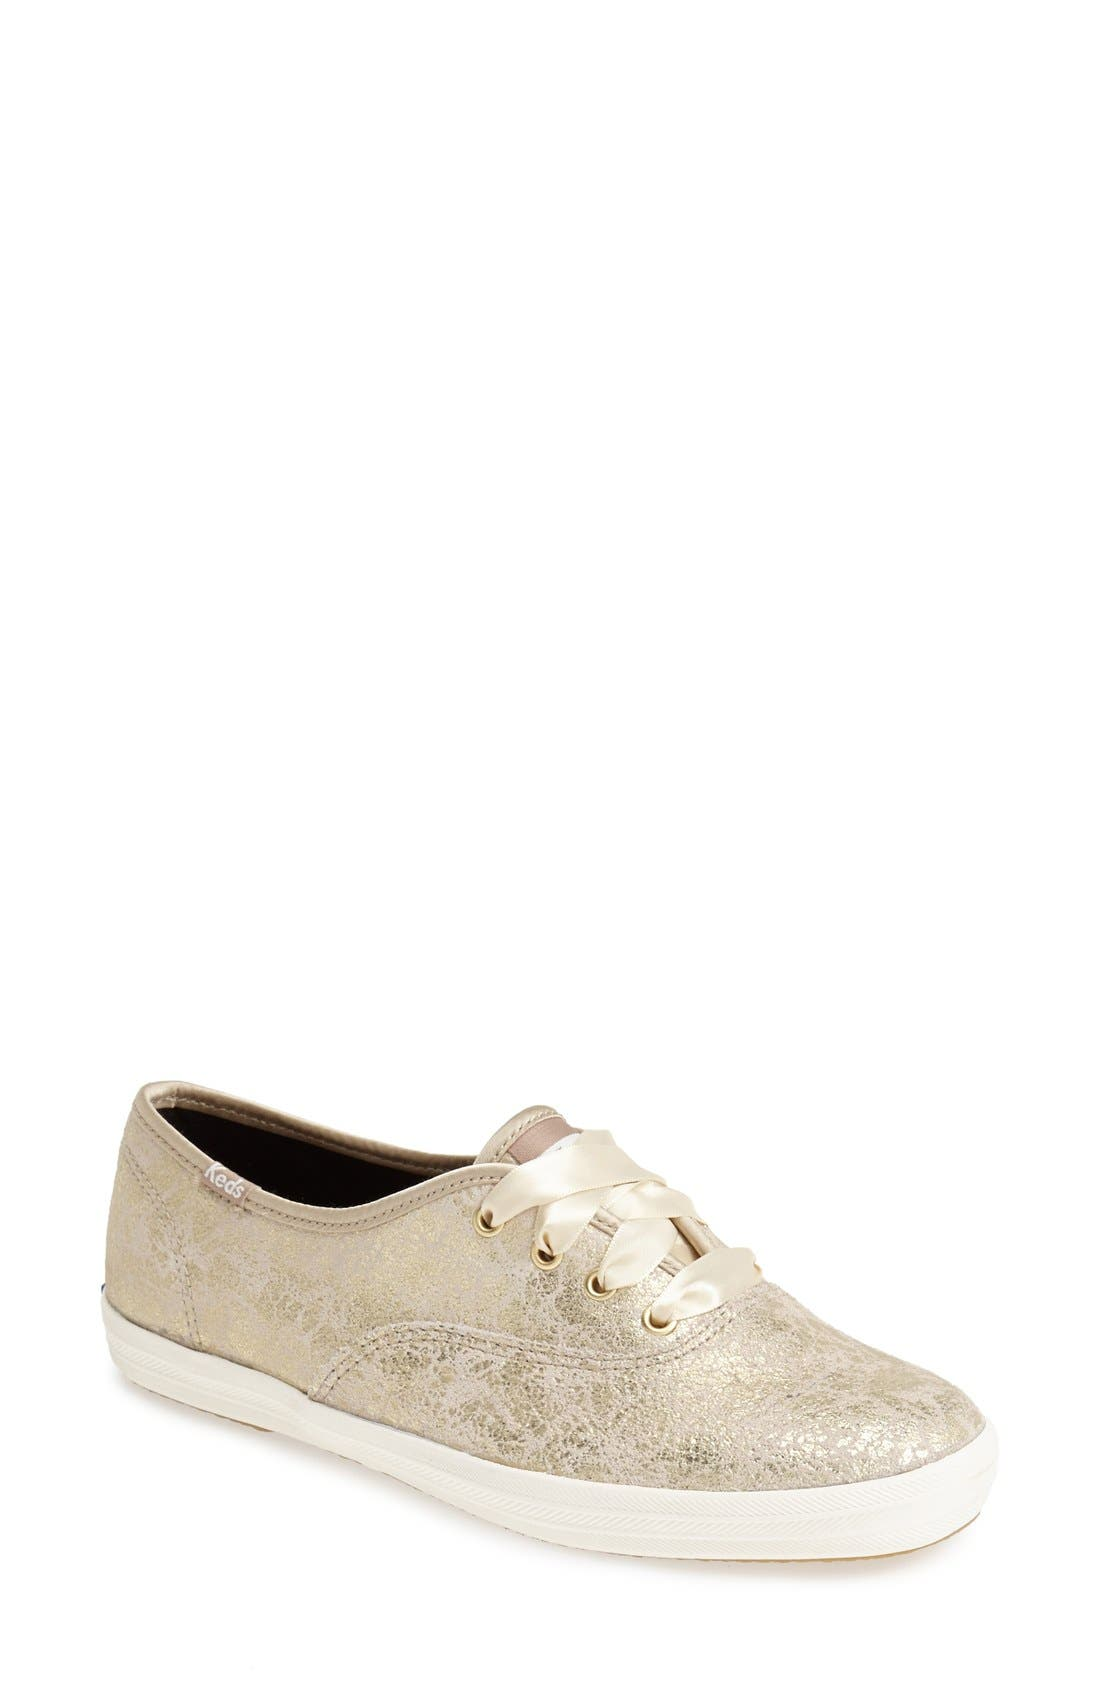 Alternate Image 1 Selected - Keds® 'Champion' Metallic Leather Sneaker (Women)